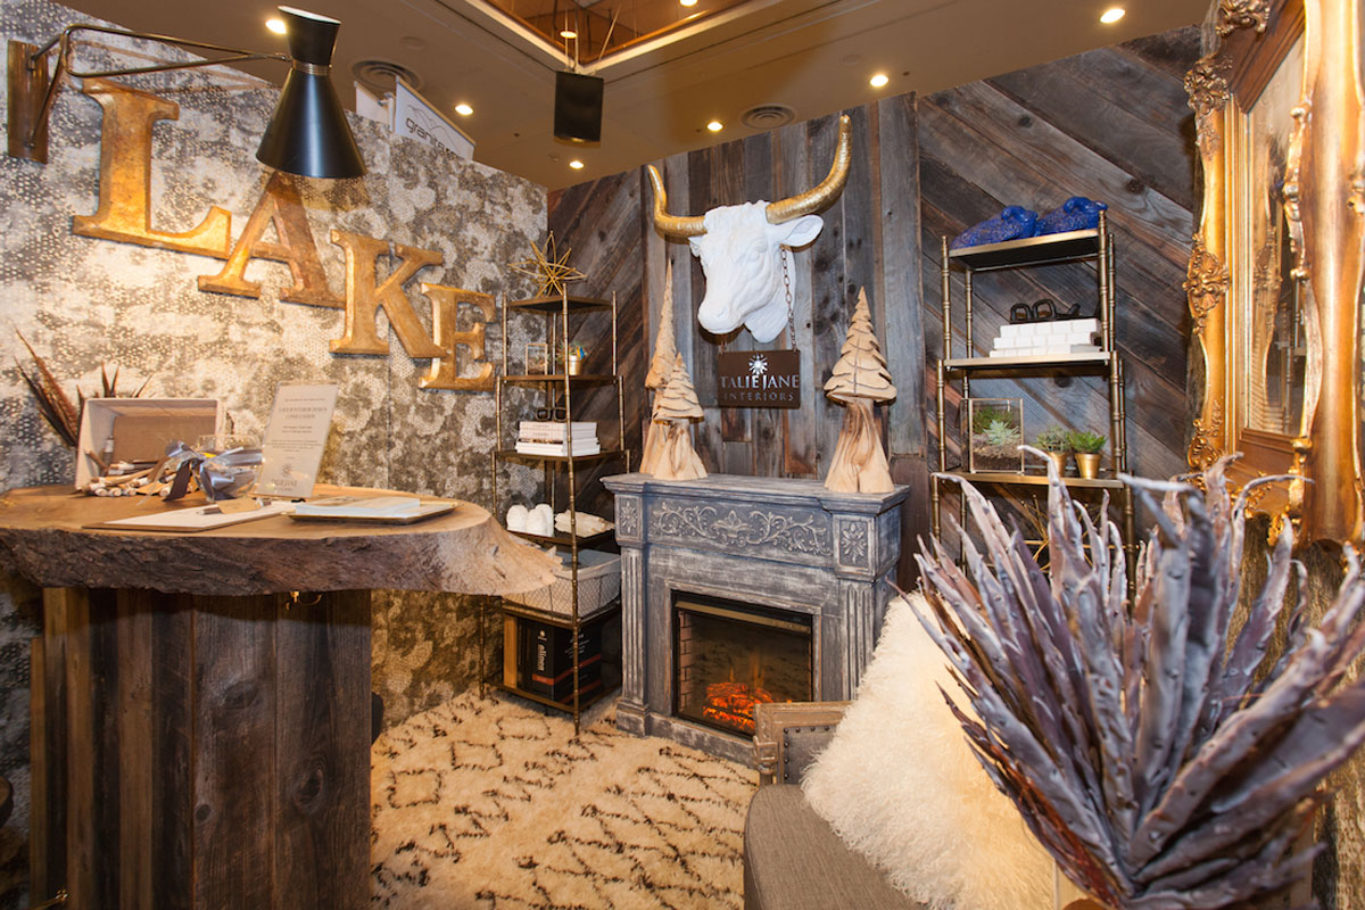 Expo Booth by Talie Jane Interiors Interior Design - South Lake Tahoe